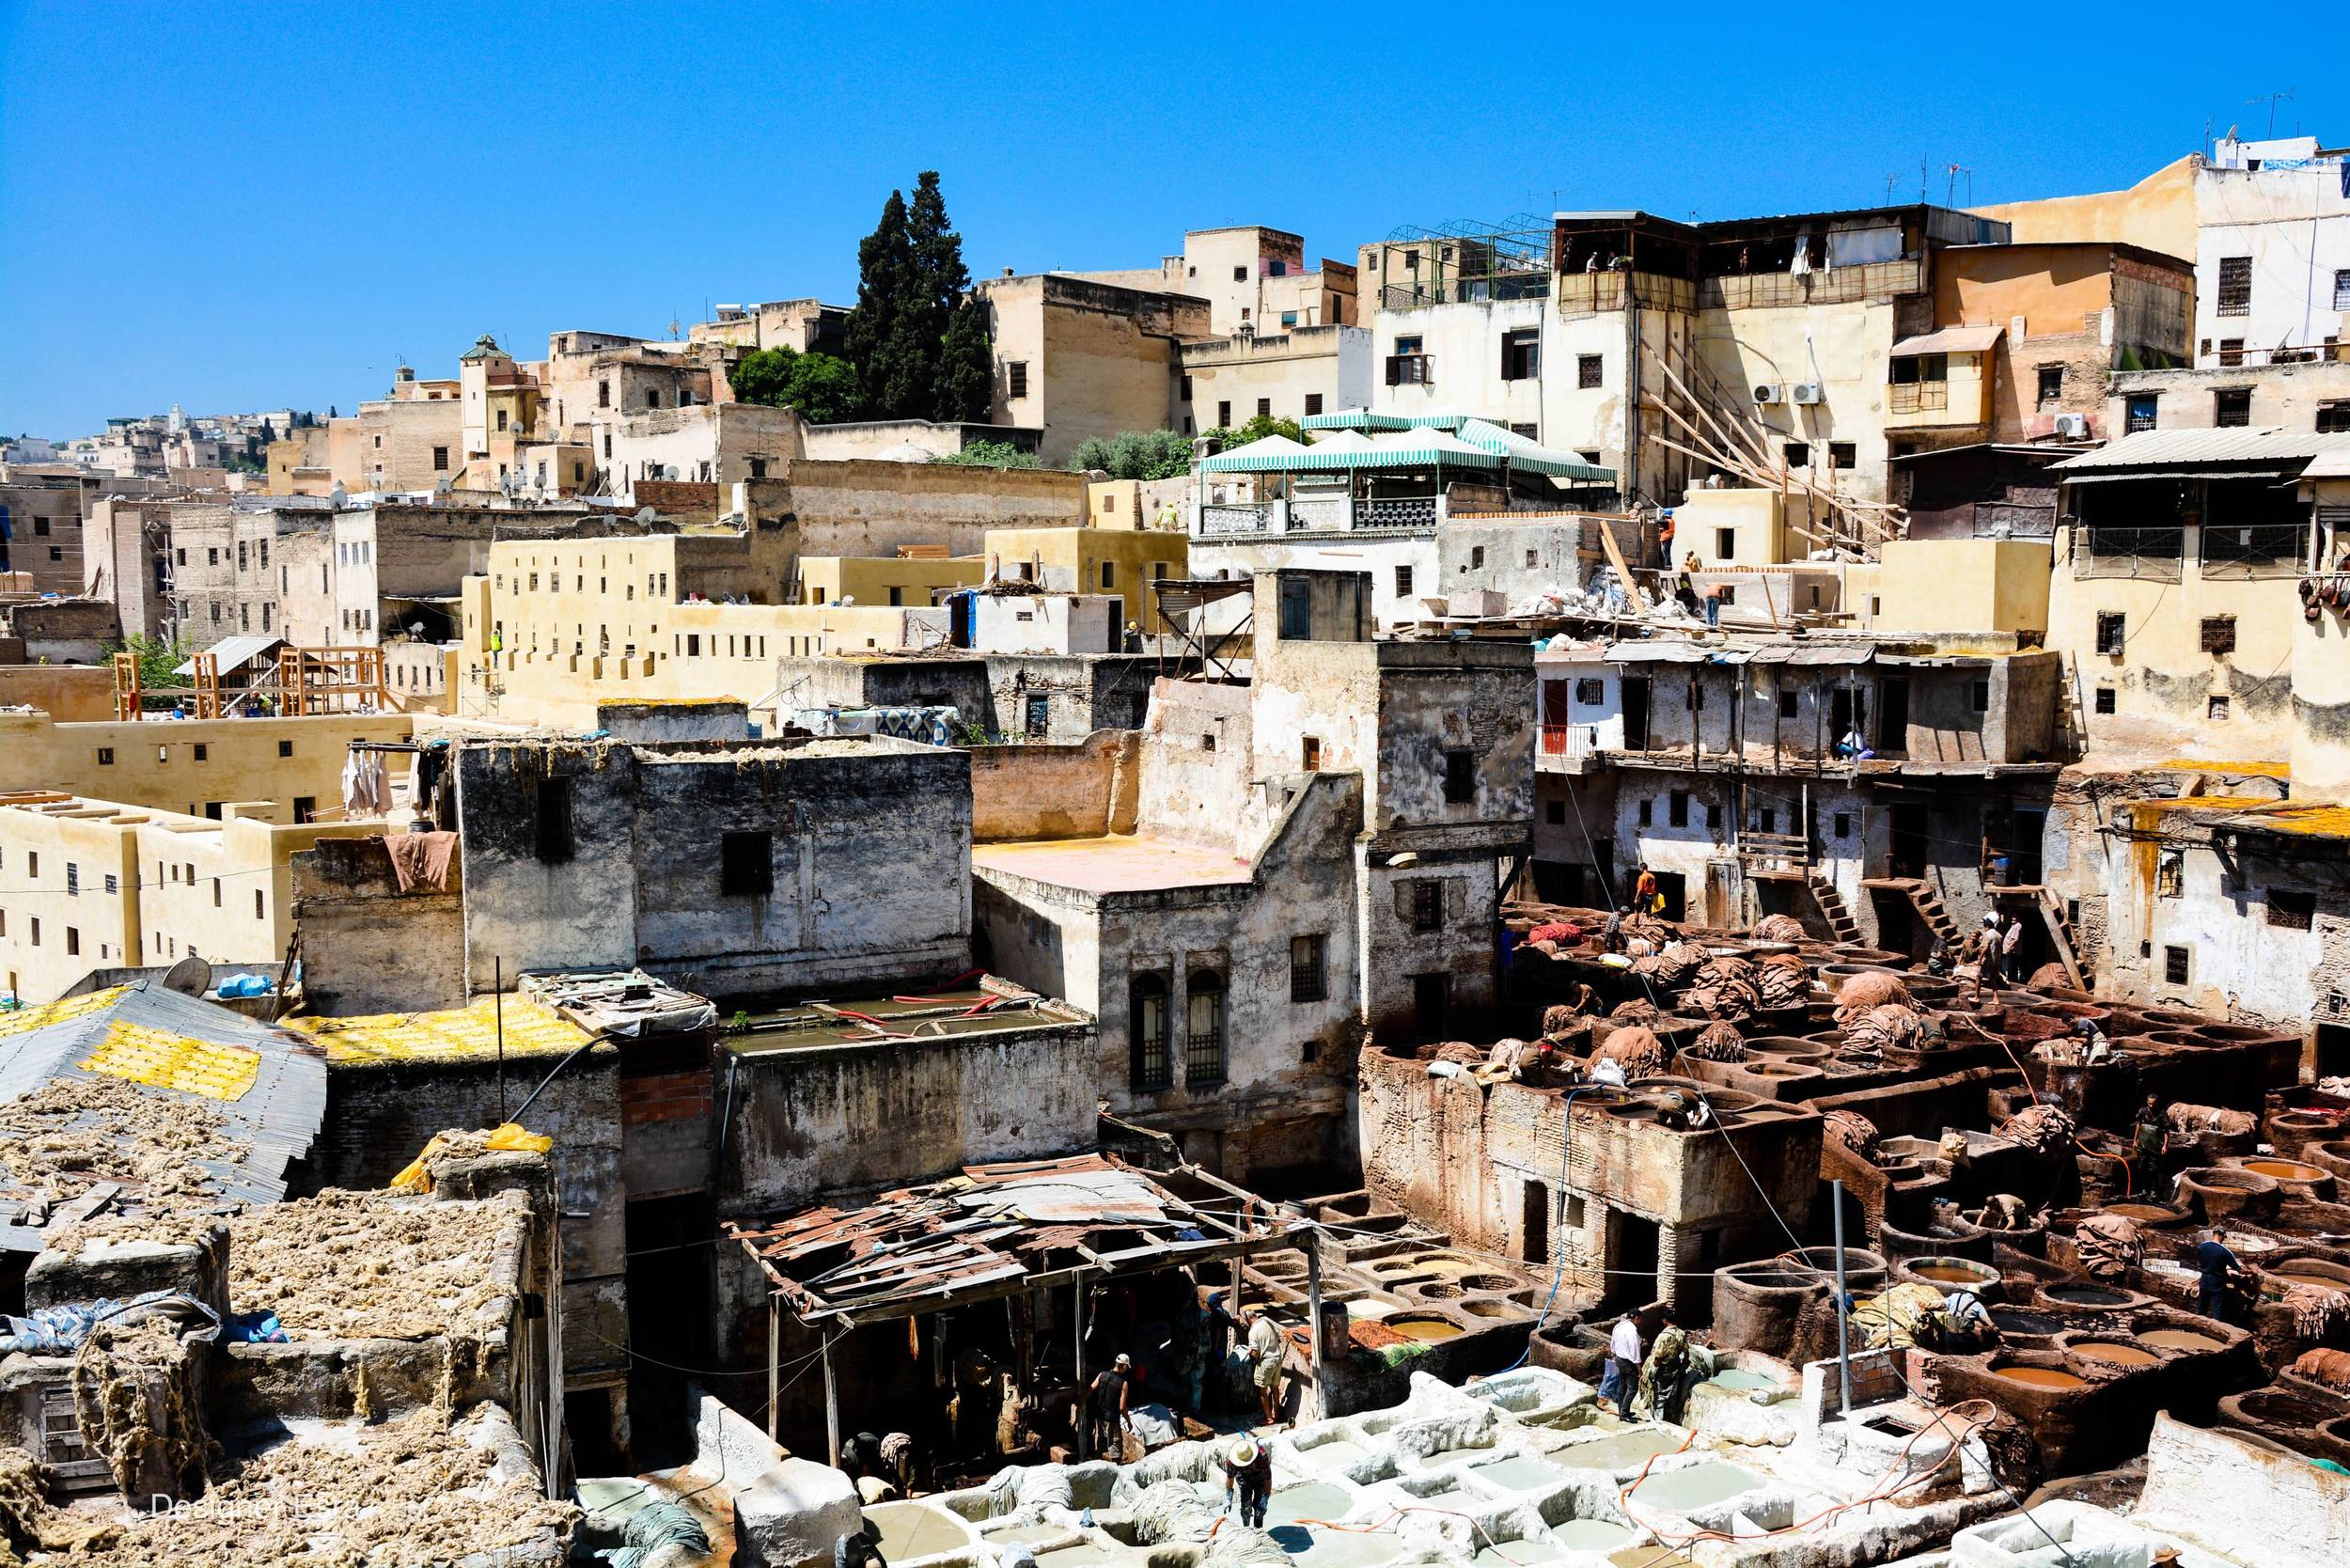 Chouara Tannery in Fes Morocco